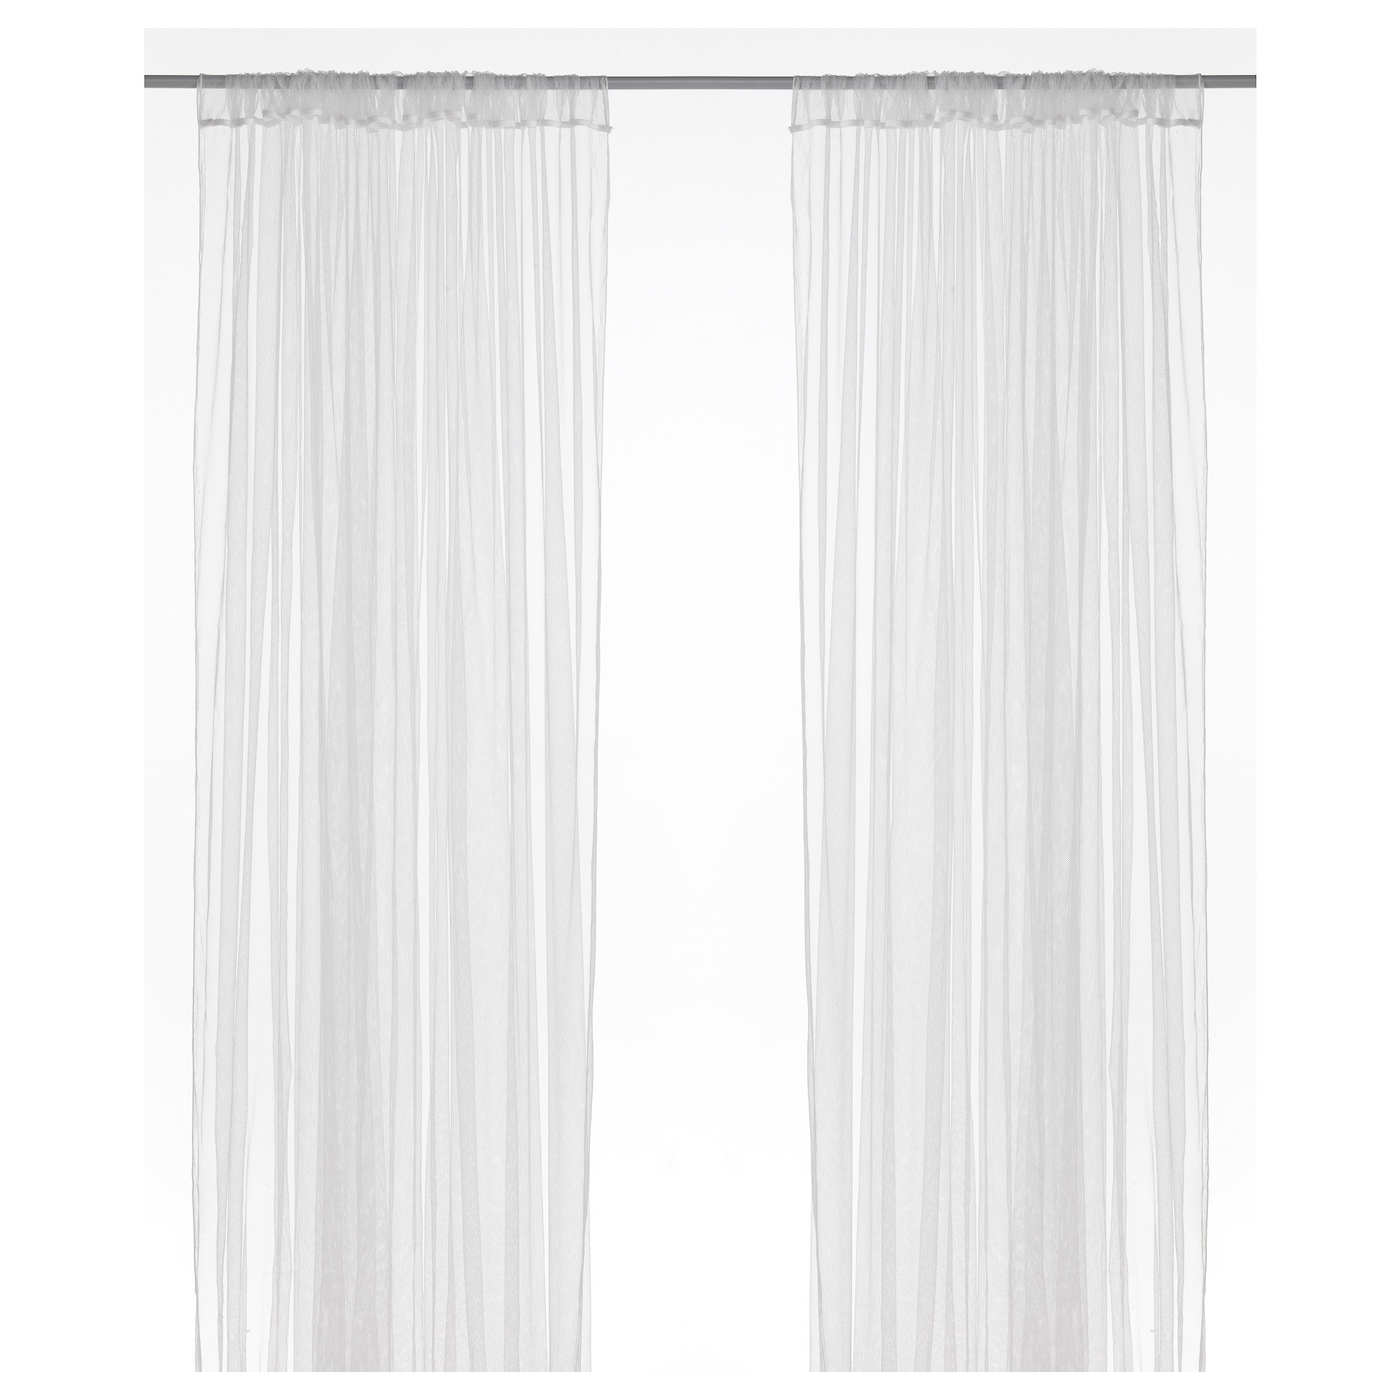 Ikea curtains net blackout ready made curtains at - Black days ikea ...